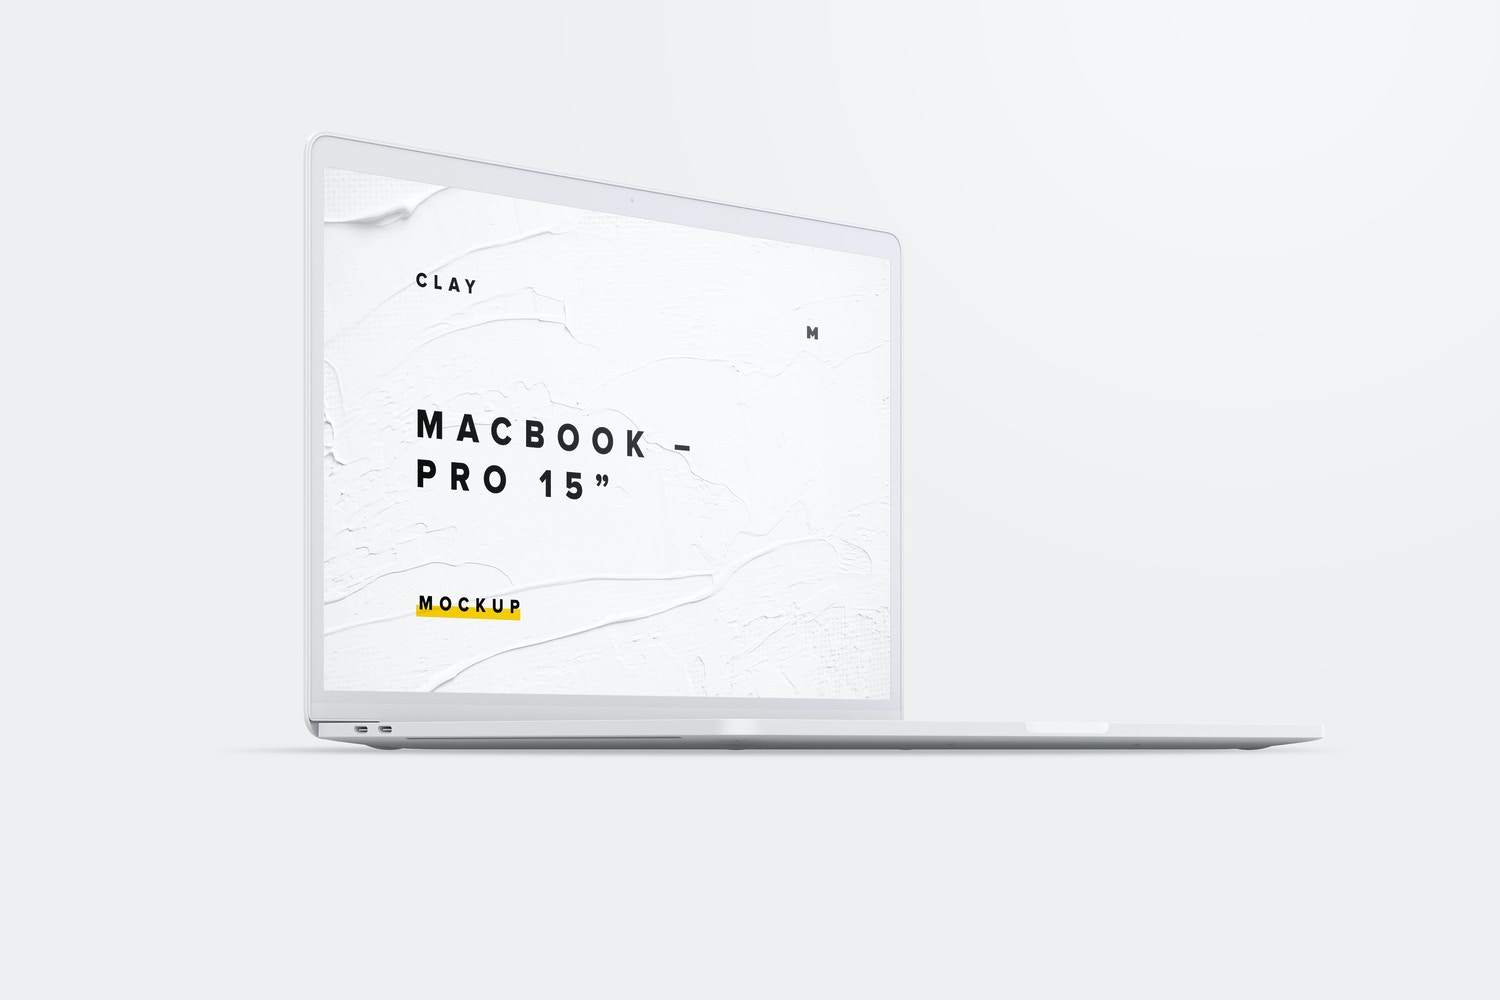 "Clay MacBook Pro 15"" with Touch Bar, Front Left View Mockup 02 (1) by Original Mockups on Original Mockups"